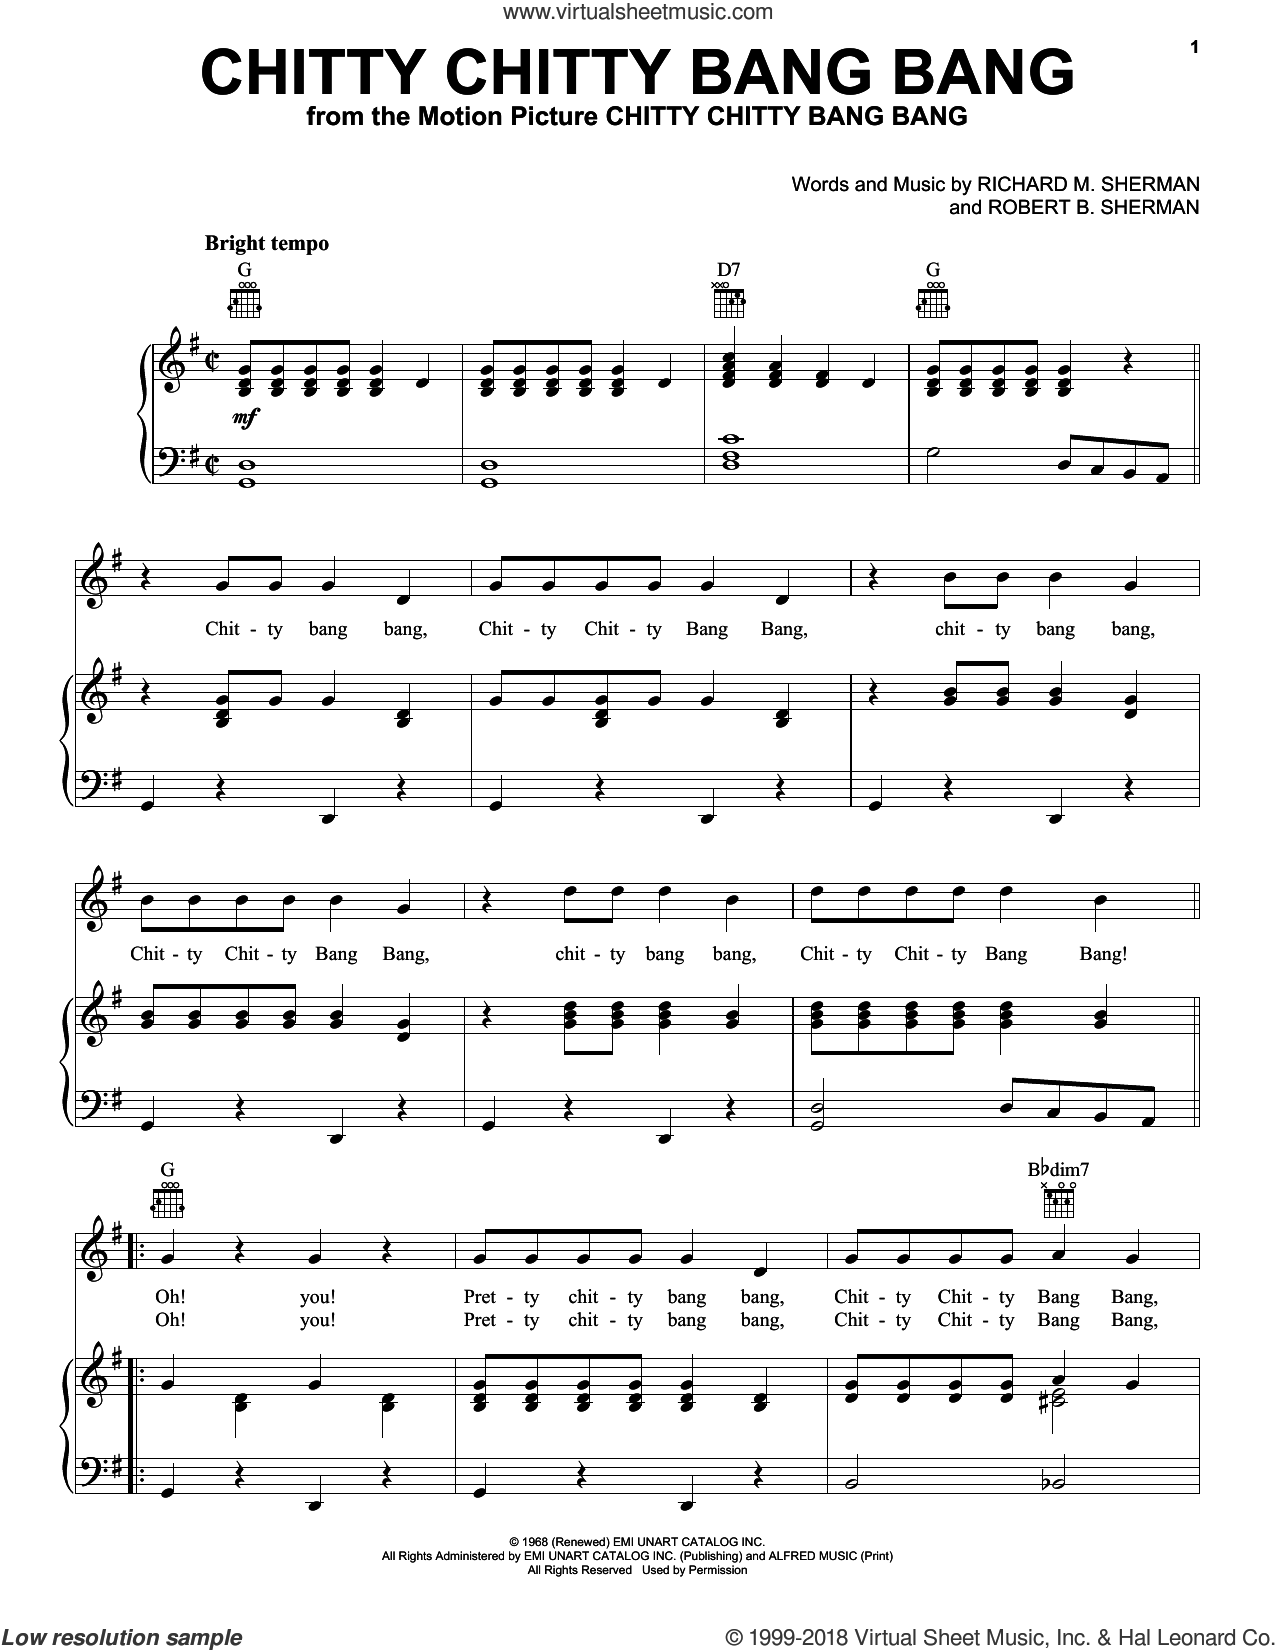 Chitty Chitty Bang Bang sheet music for voice, piano or guitar by Richard M. Sherman, Paul Mauriat and Robert B. Sherman, intermediate skill level